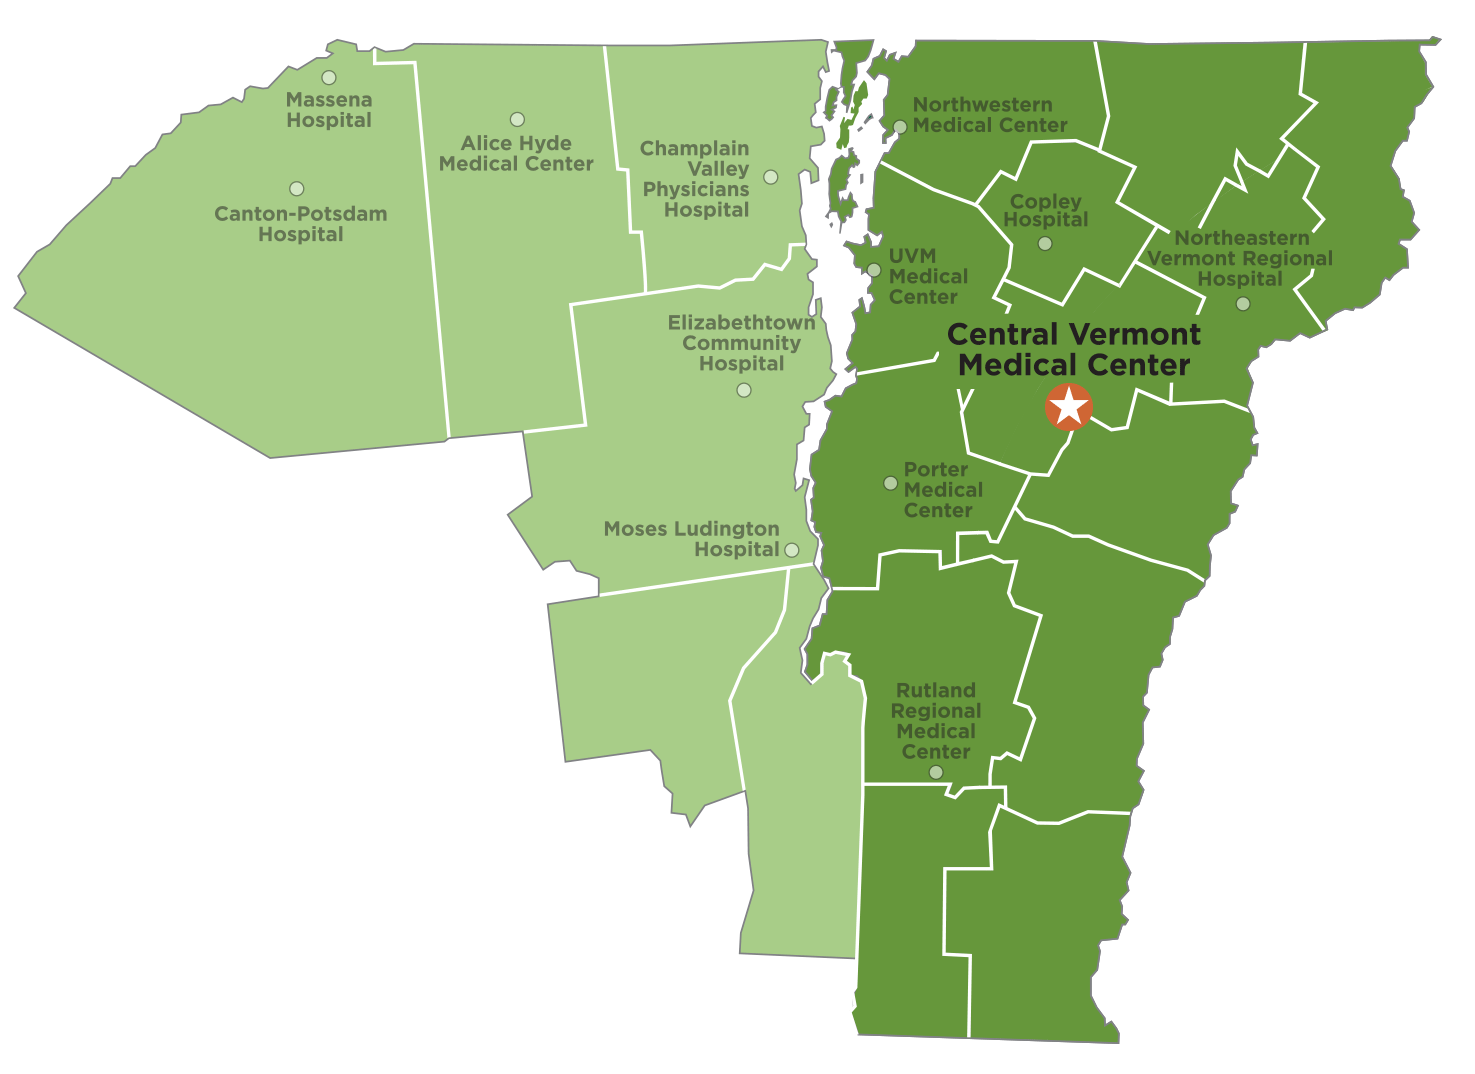 Map of Vermont and upstate New York highlight UVM Health Network hospital locations.